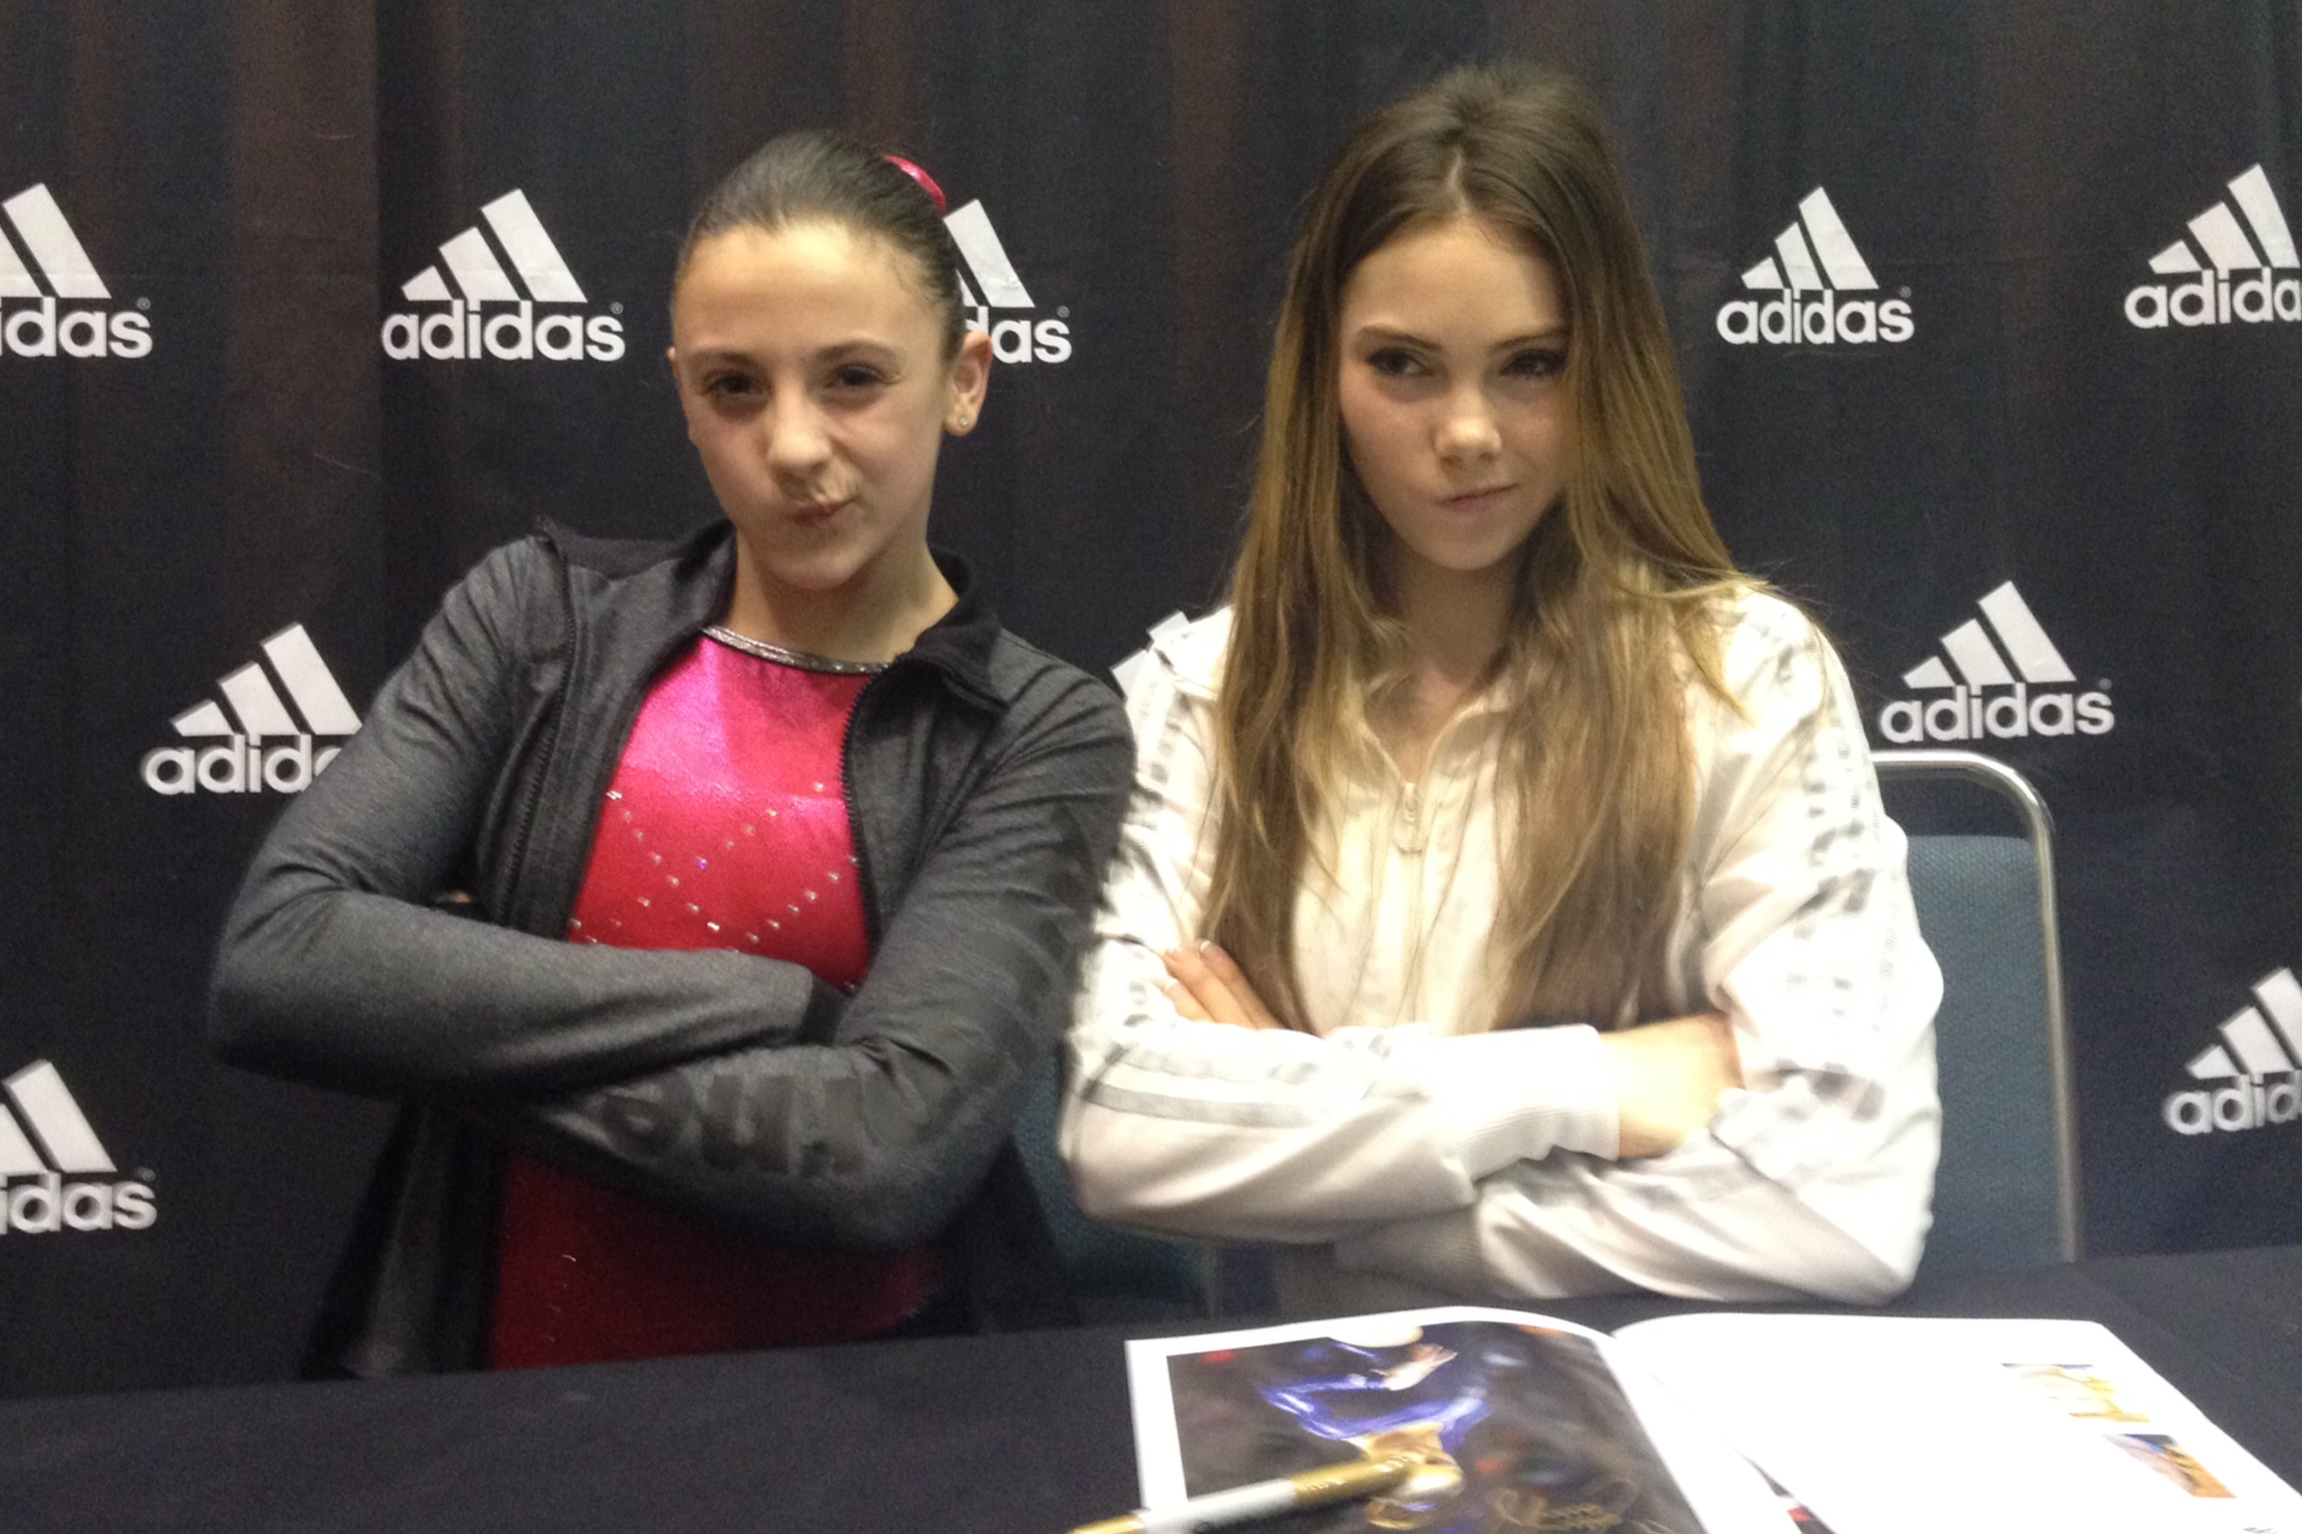 With McKayla Maroney